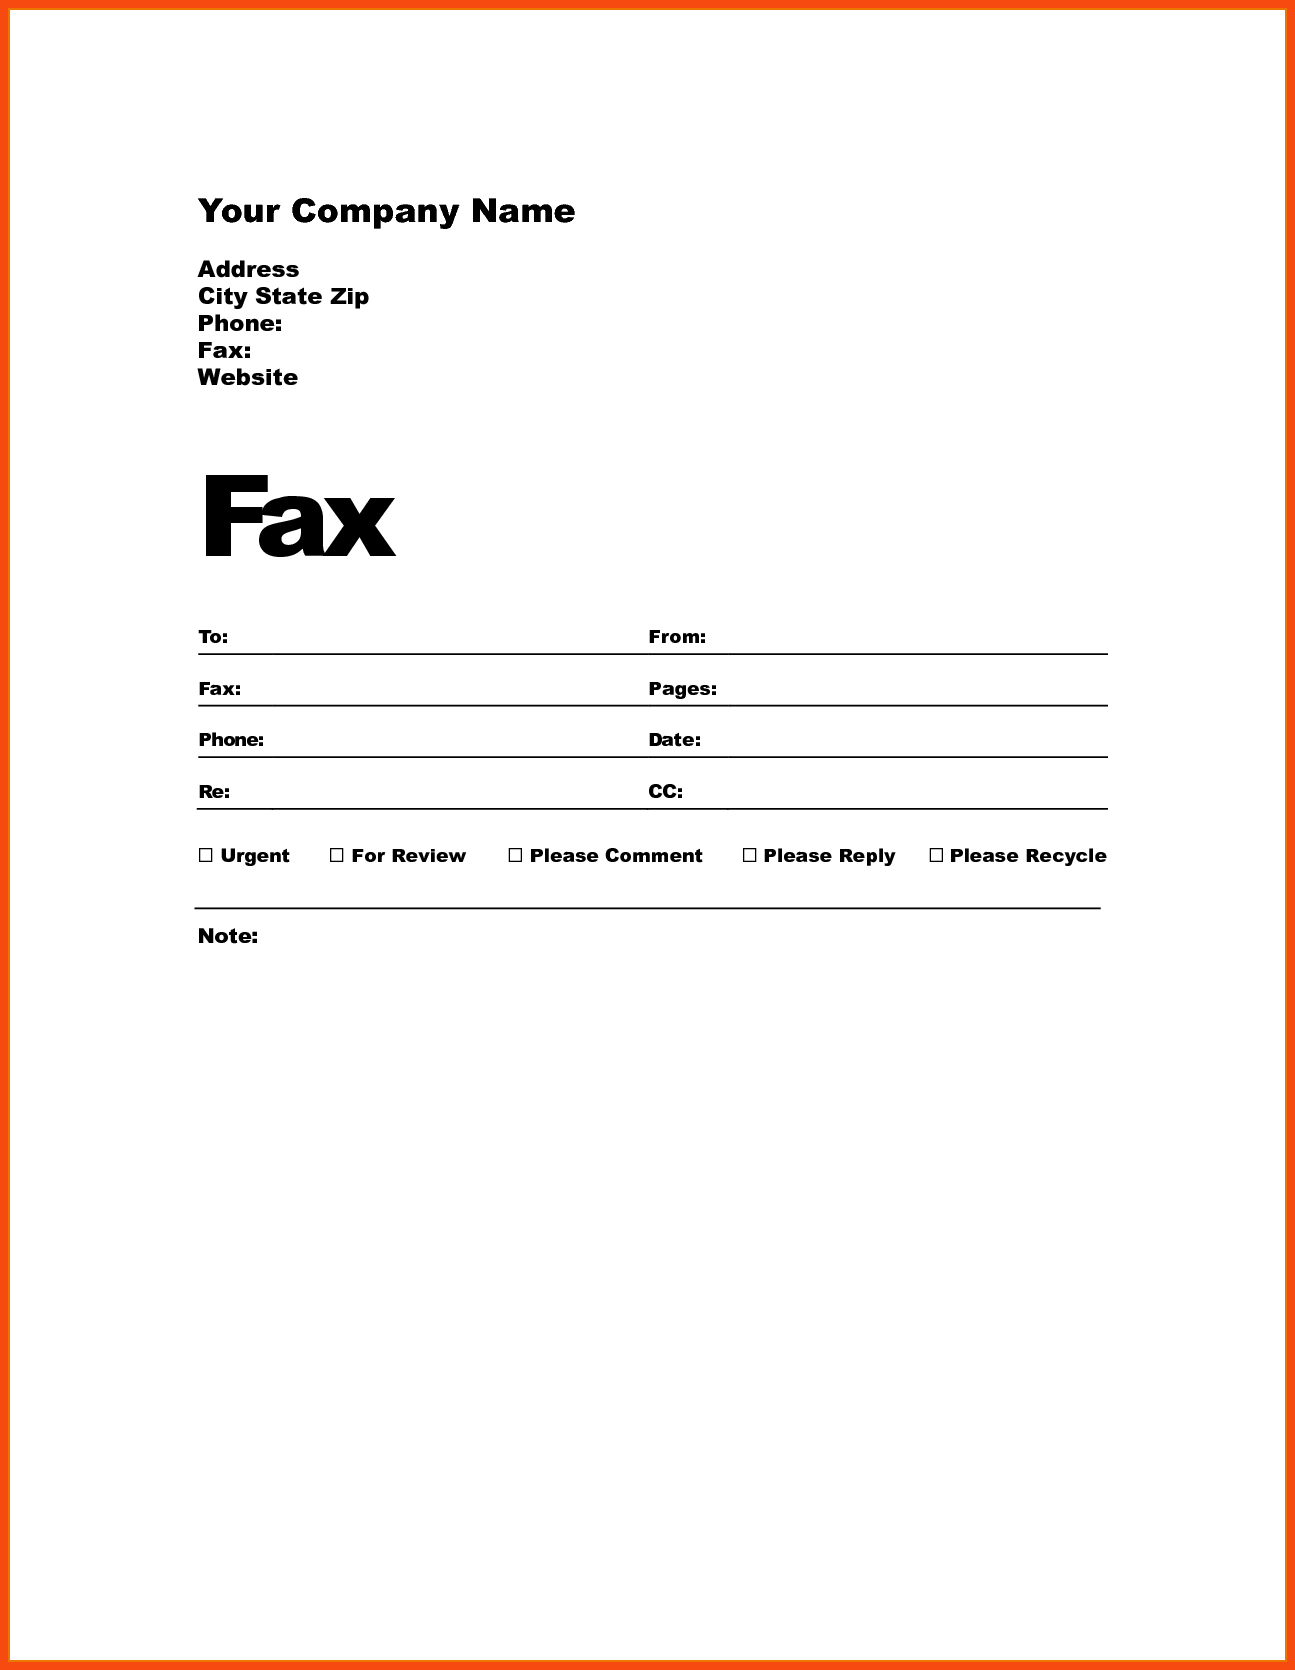 Professional Fax Cover Sheet, Fax Cover Sheet Printable